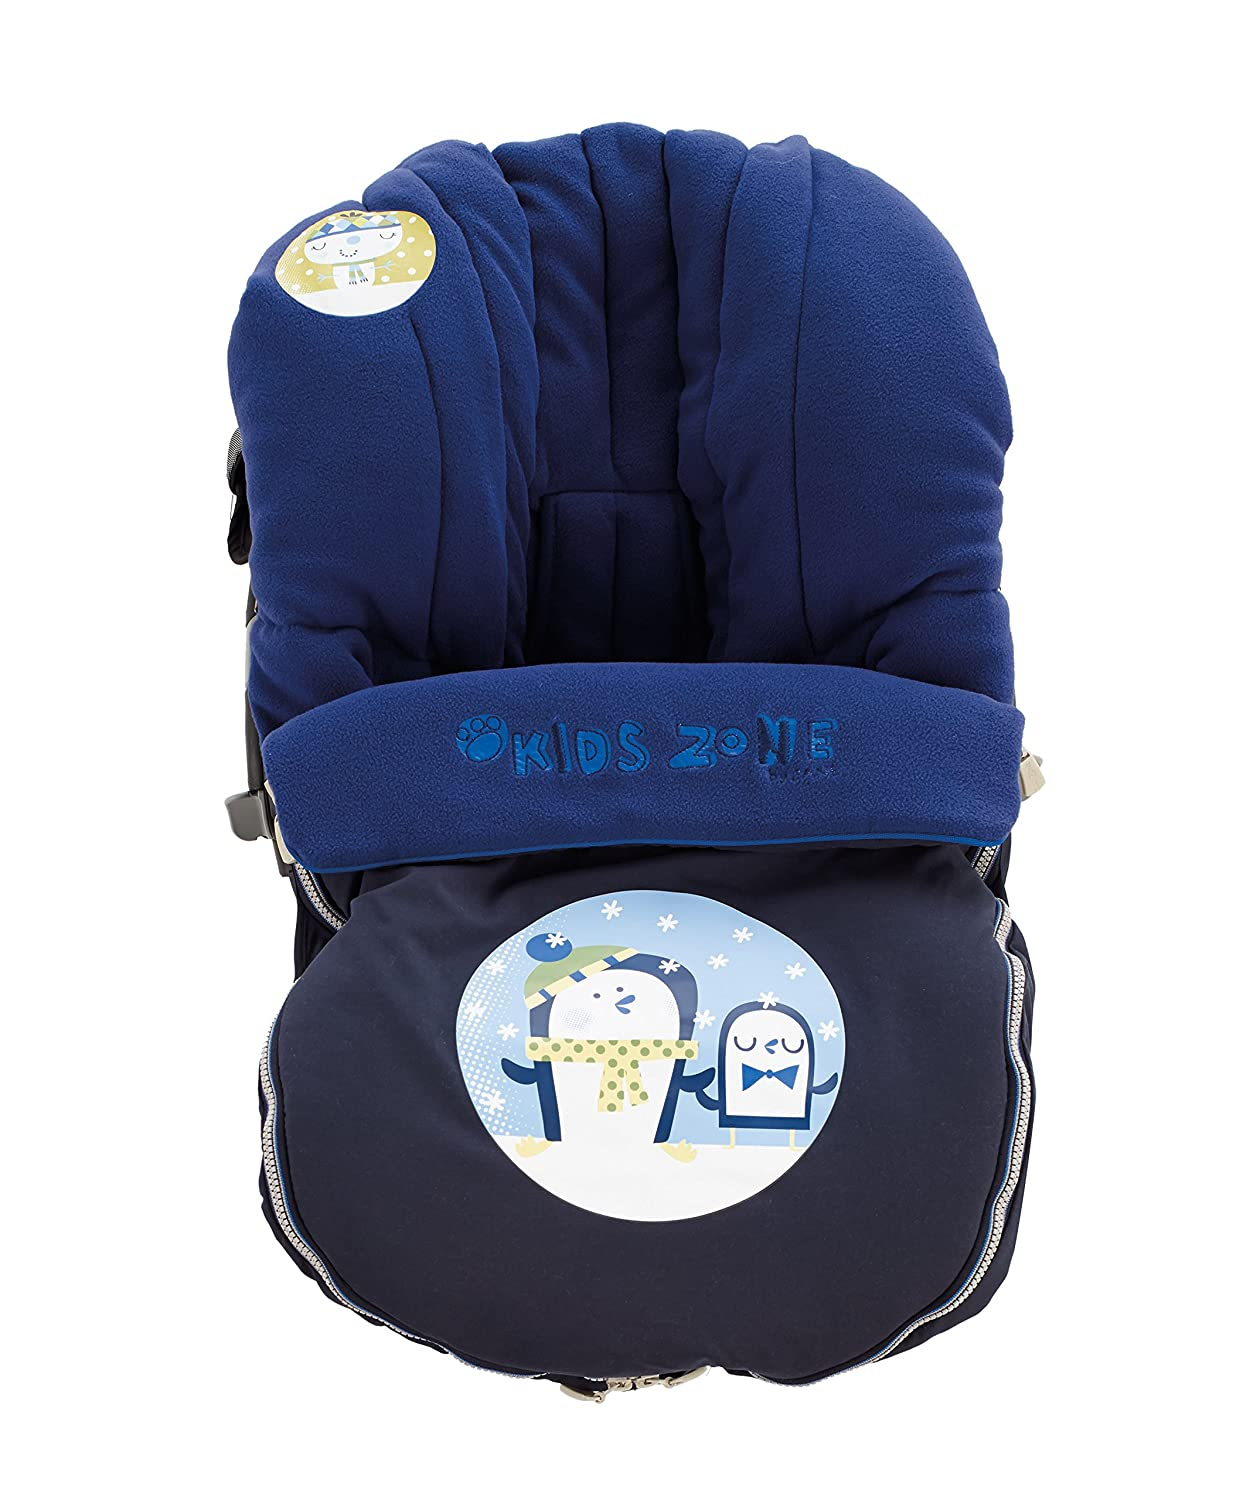 Jane Moom G0 Footmuff (Atlantic) 80474-S11